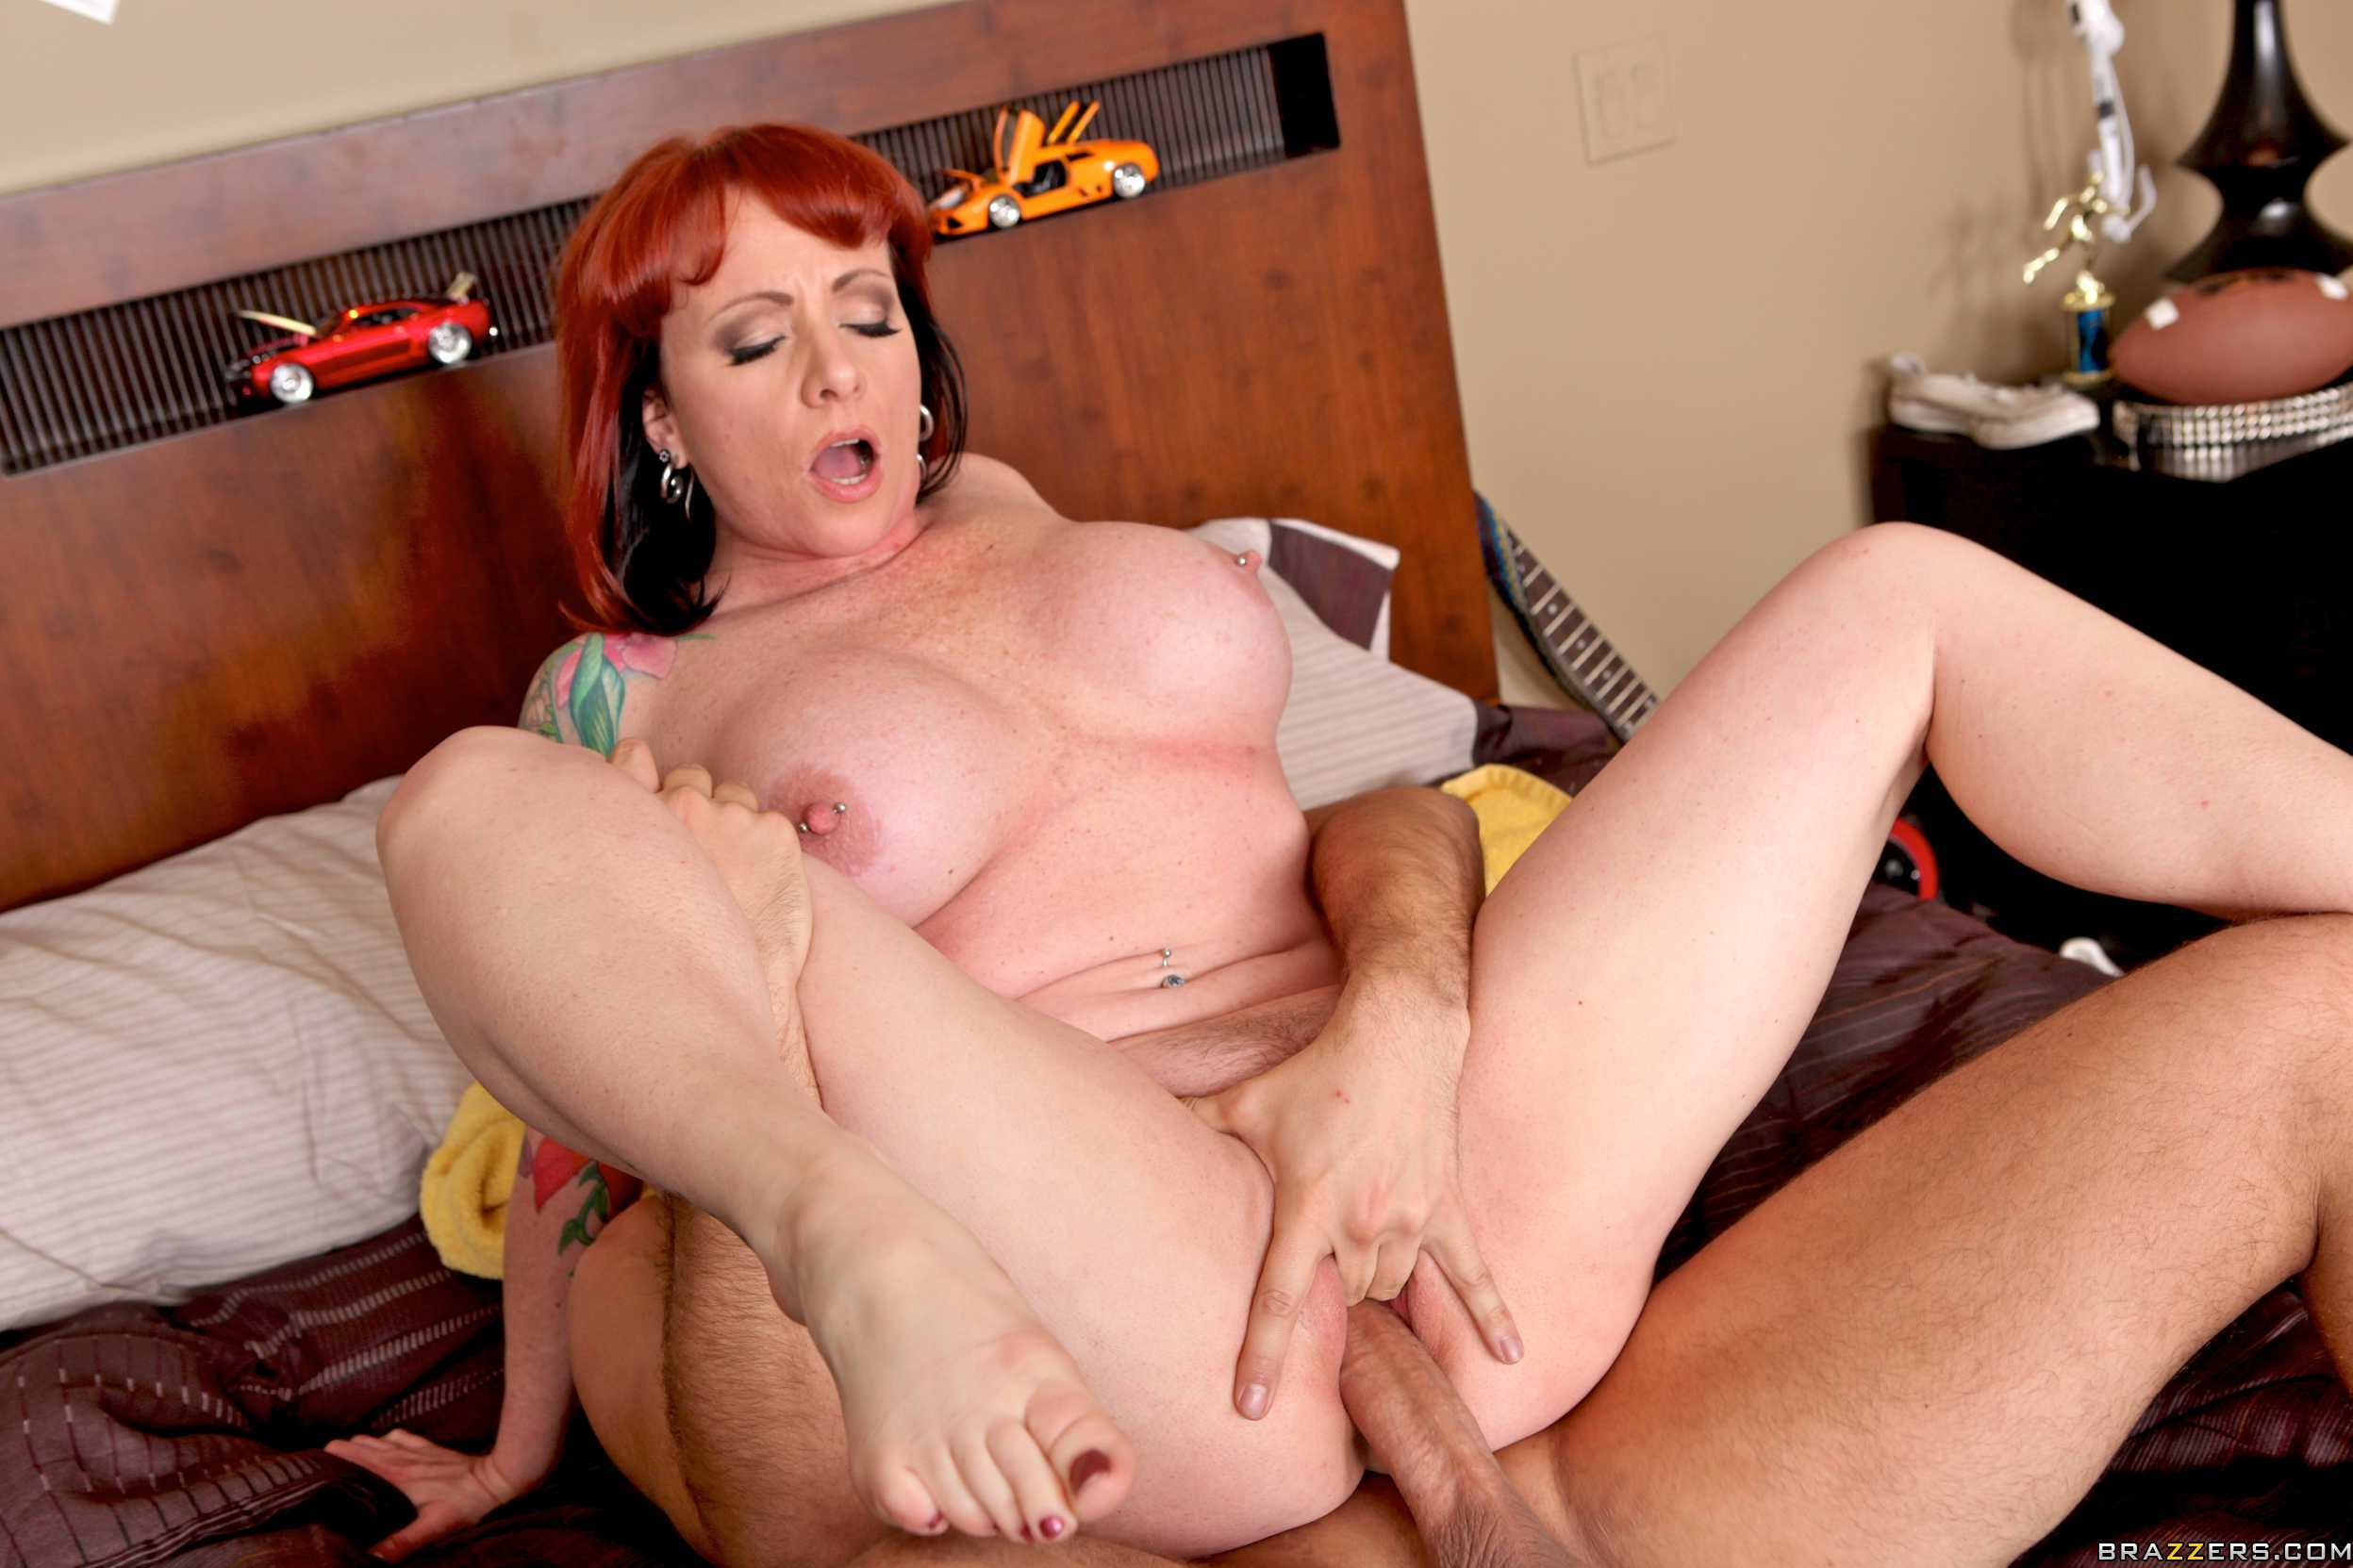 Kylie ireland 31 milf worship 10 - 1 part 6